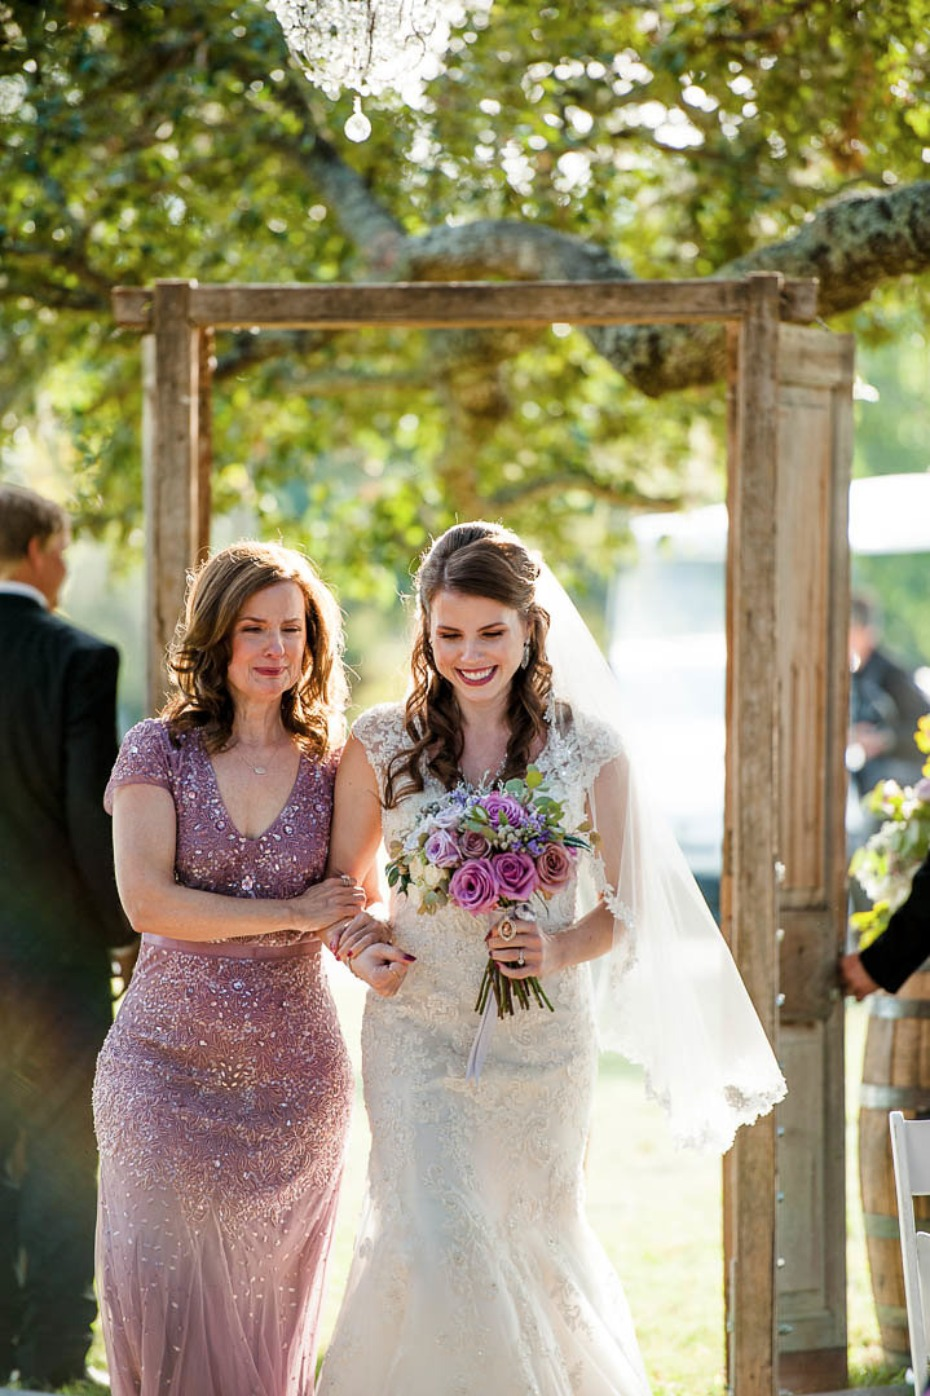 Mom walks daughter down the aisle